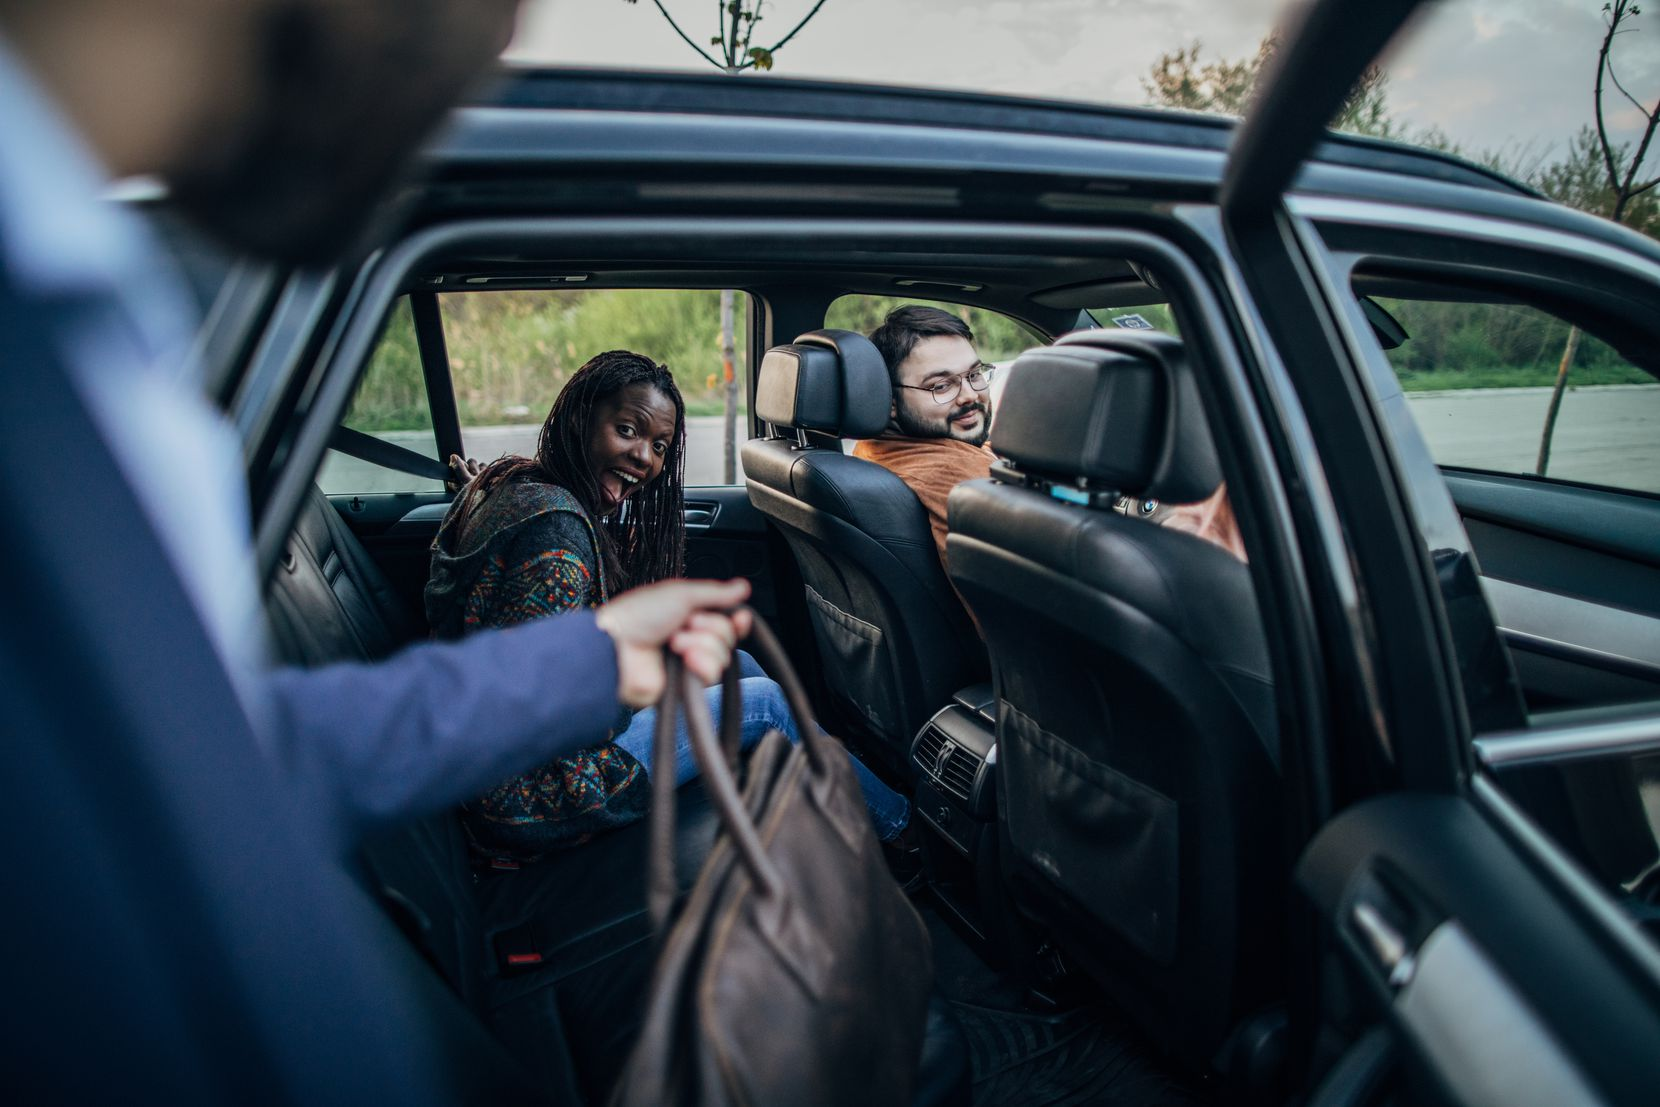 Instead of riding in an empty car, the In Try Parking It initiative aims to match people for carpooling and vanpooling opportunities.